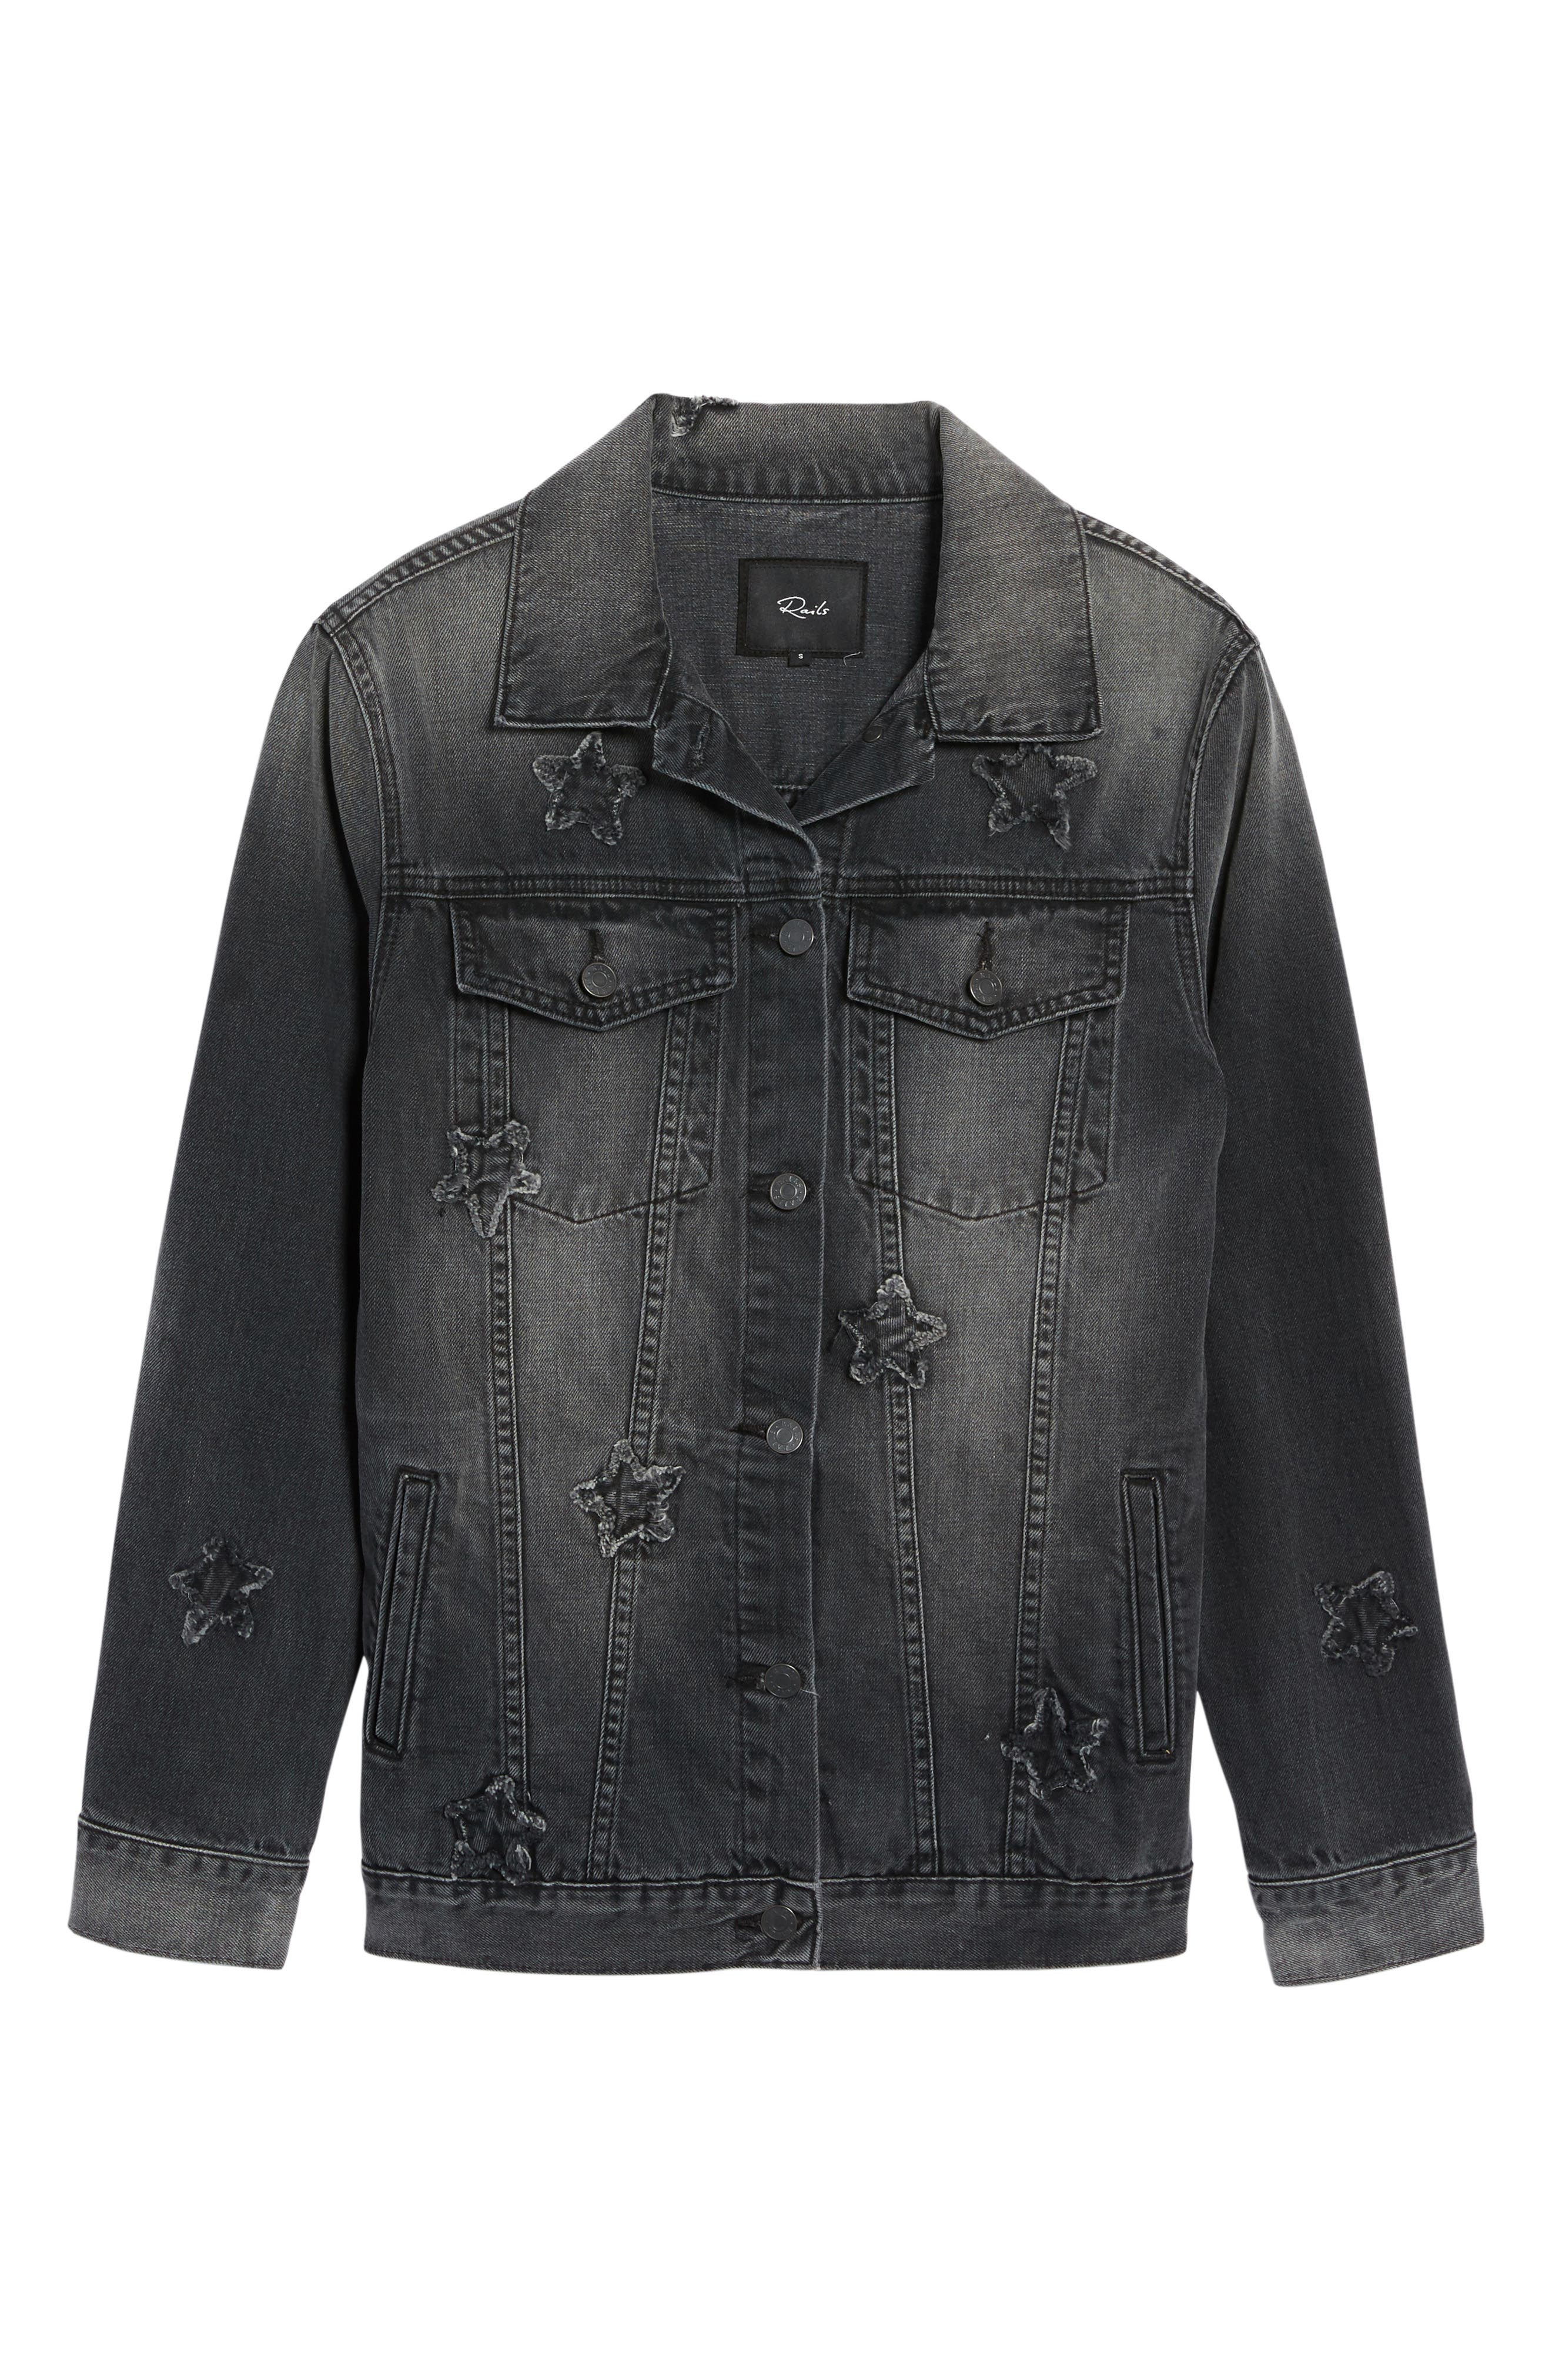 Knox Star Patch Denim Jacket,                             Alternate thumbnail 6, color,                             006